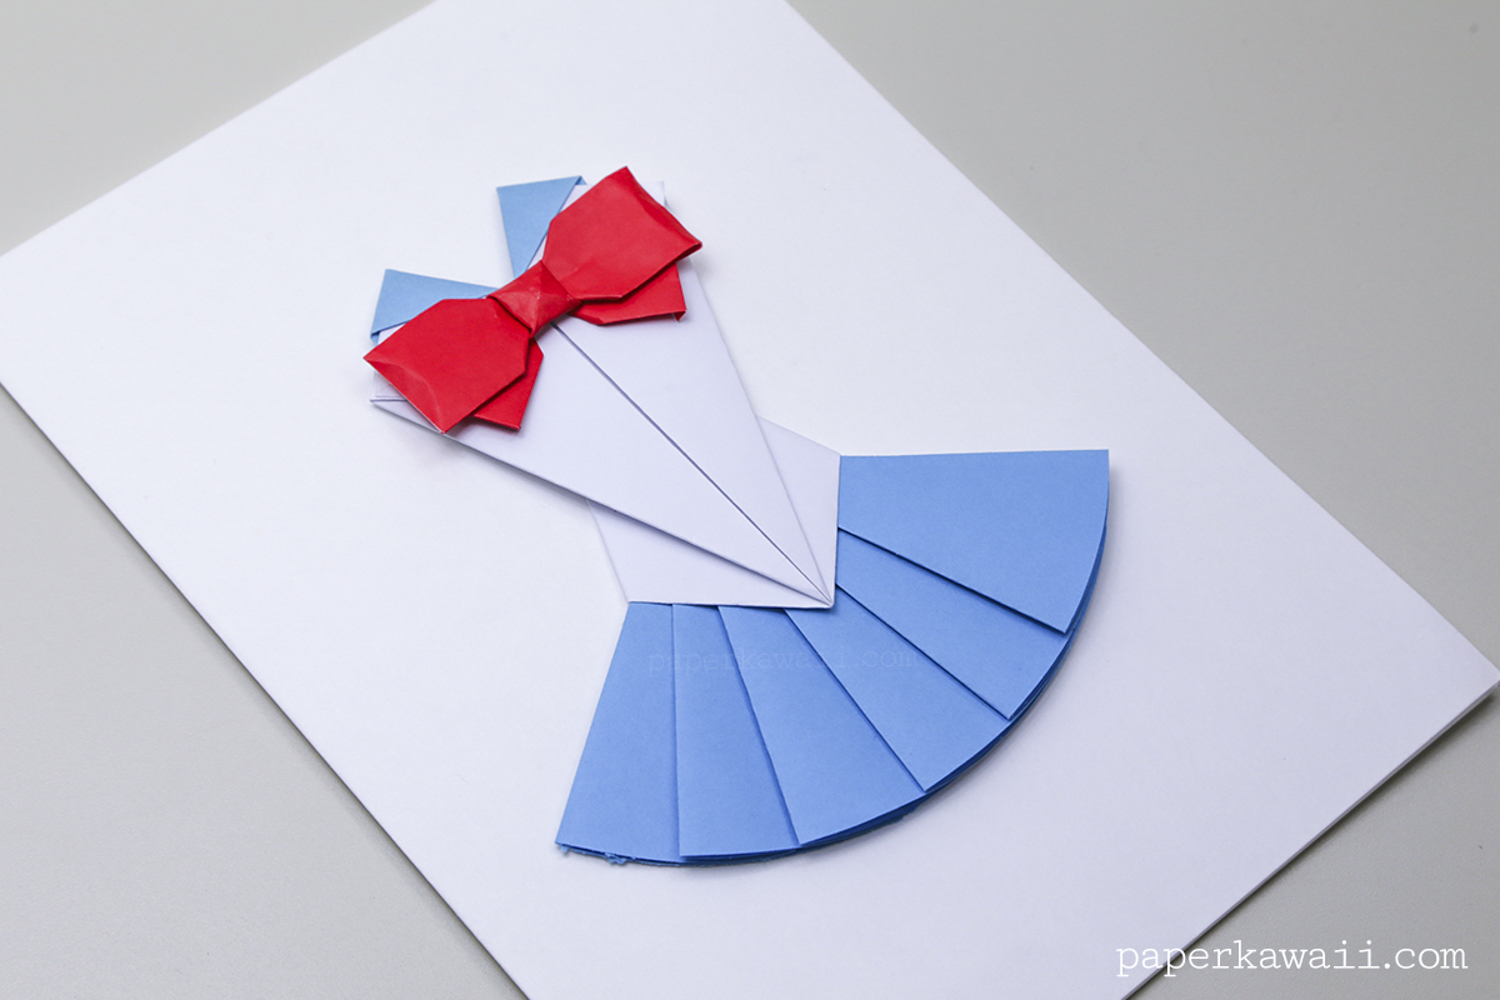 How To: Origami Gift Bows - YouTube   Origami gifts, Origami paper ...   1000x1500